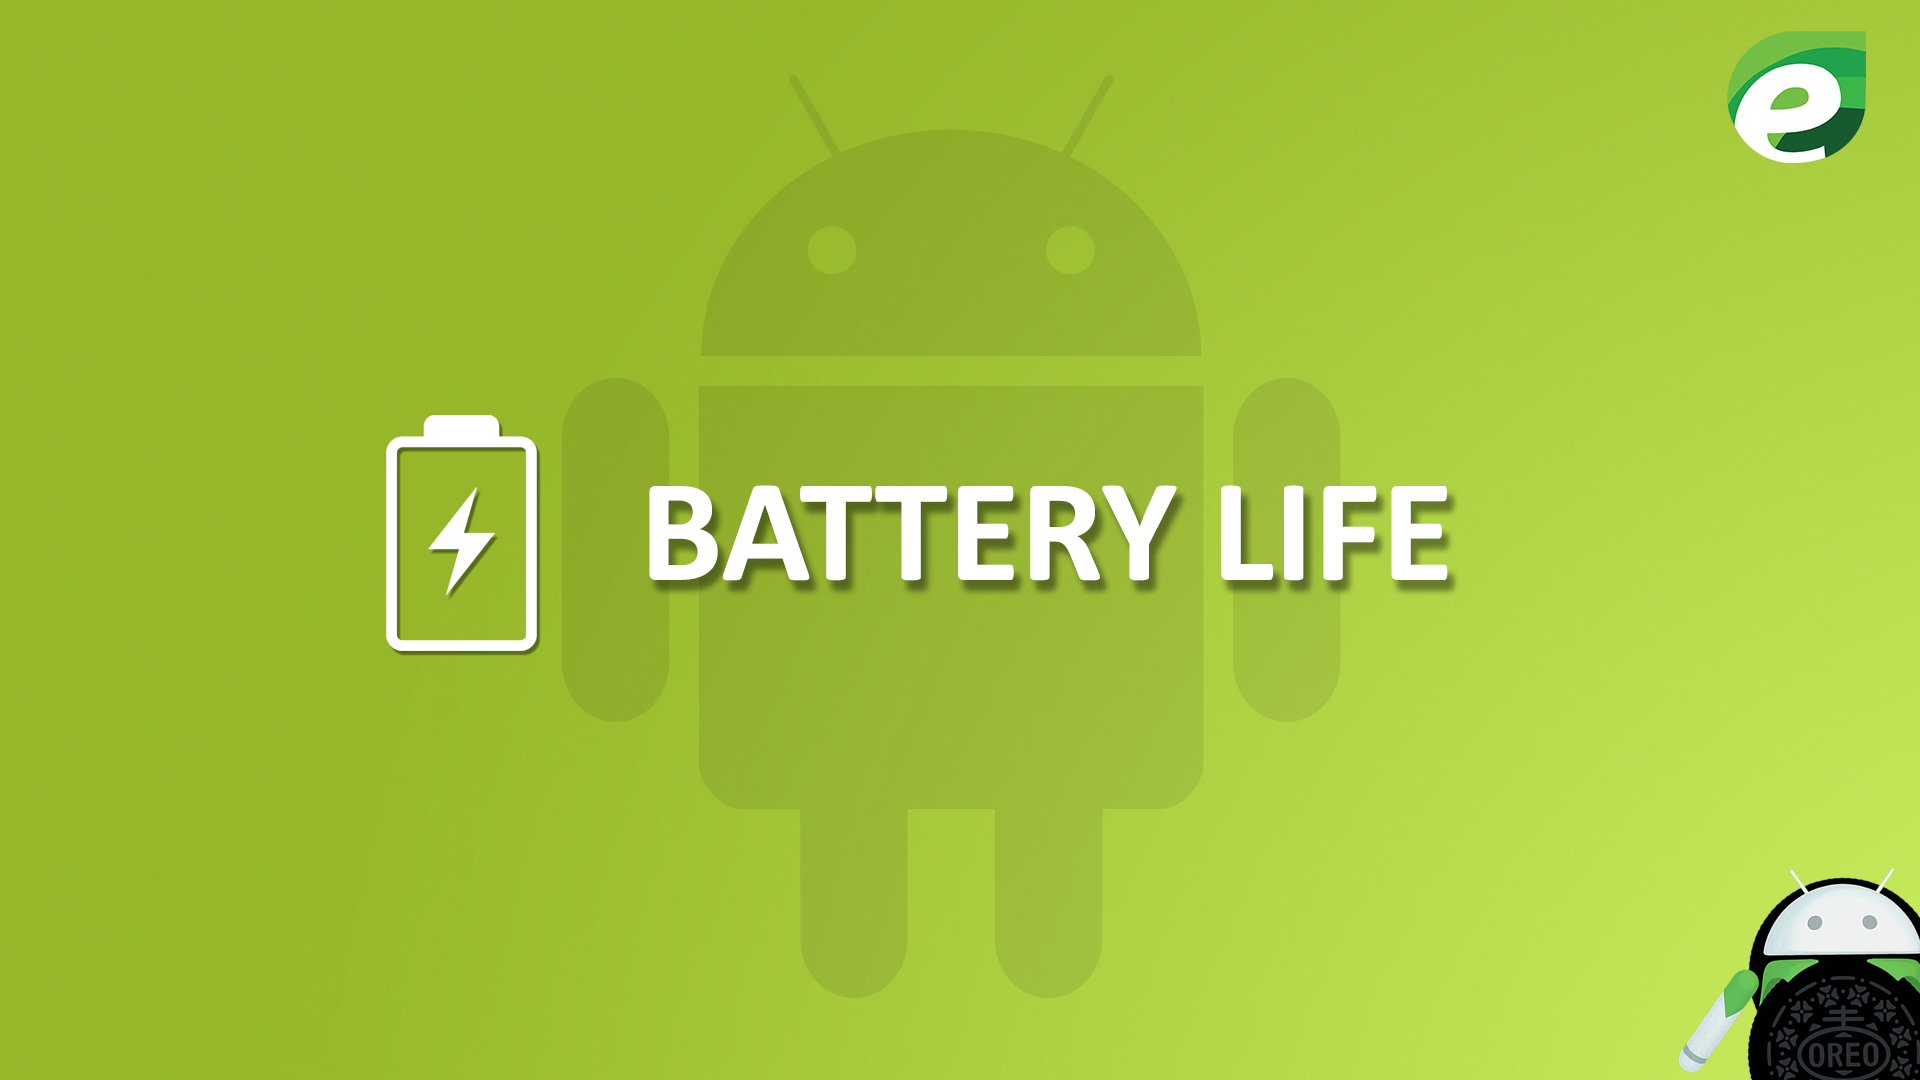 Android oreo- battery life